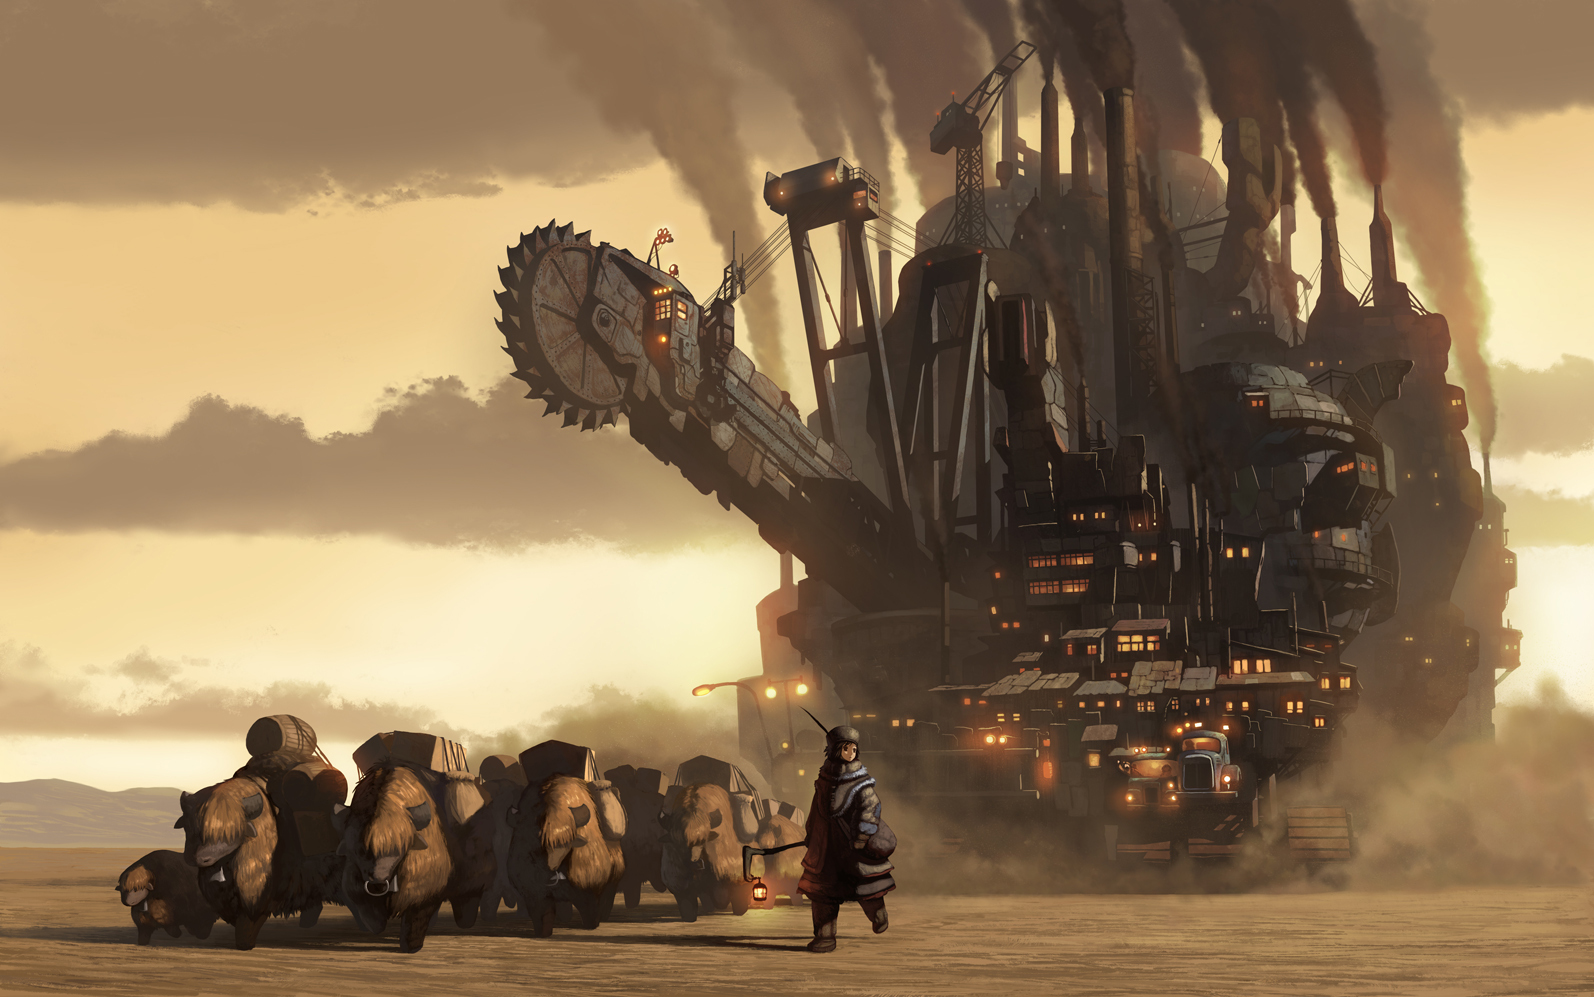 Best steampunk wallpapers hottest pictures wallpapers - Steampunk mobel ...